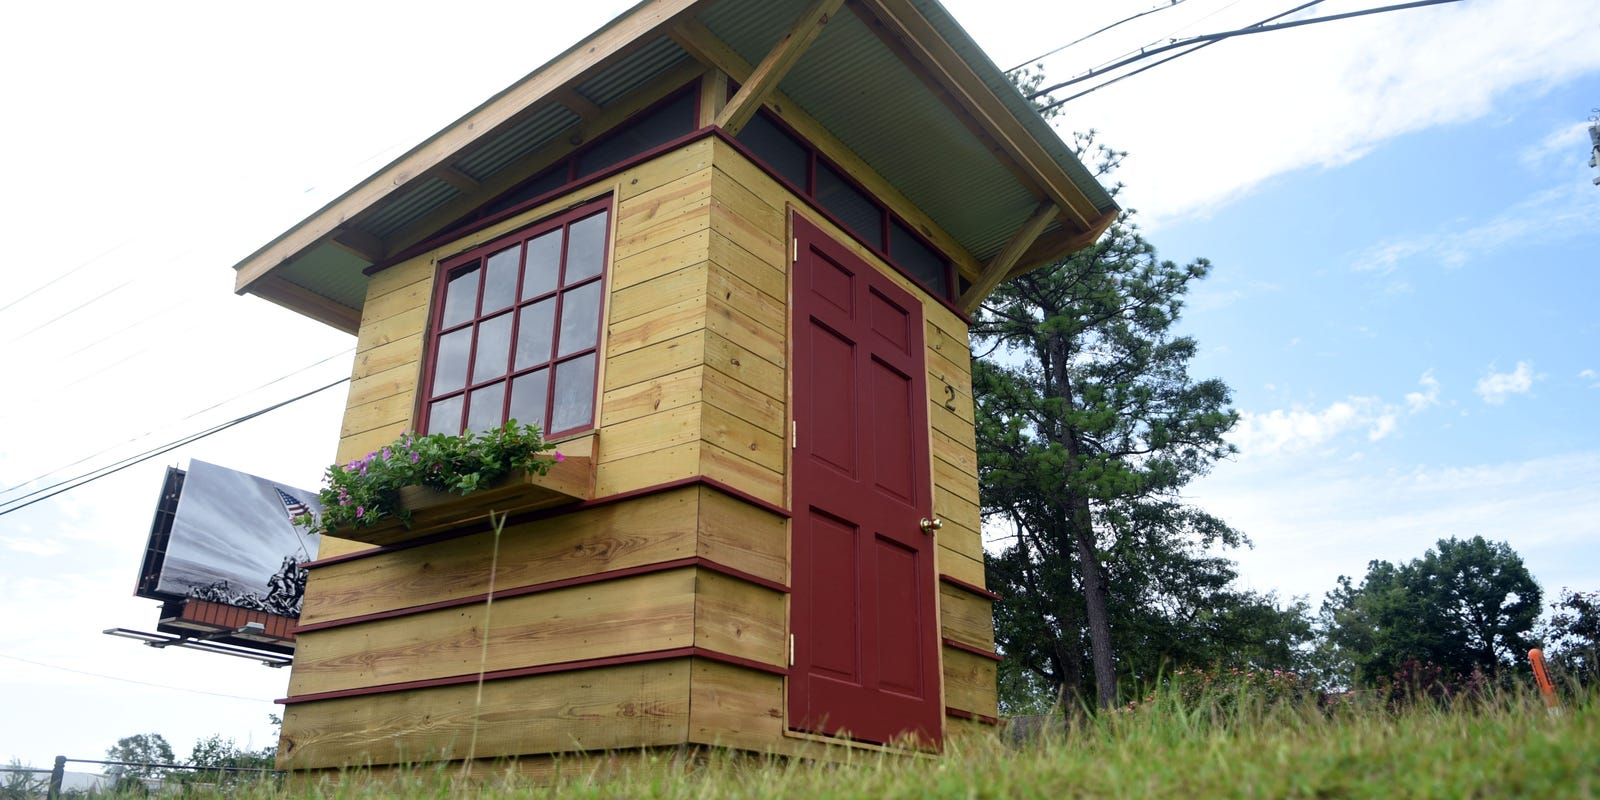 Hattiesburg architect opens tiny house factory